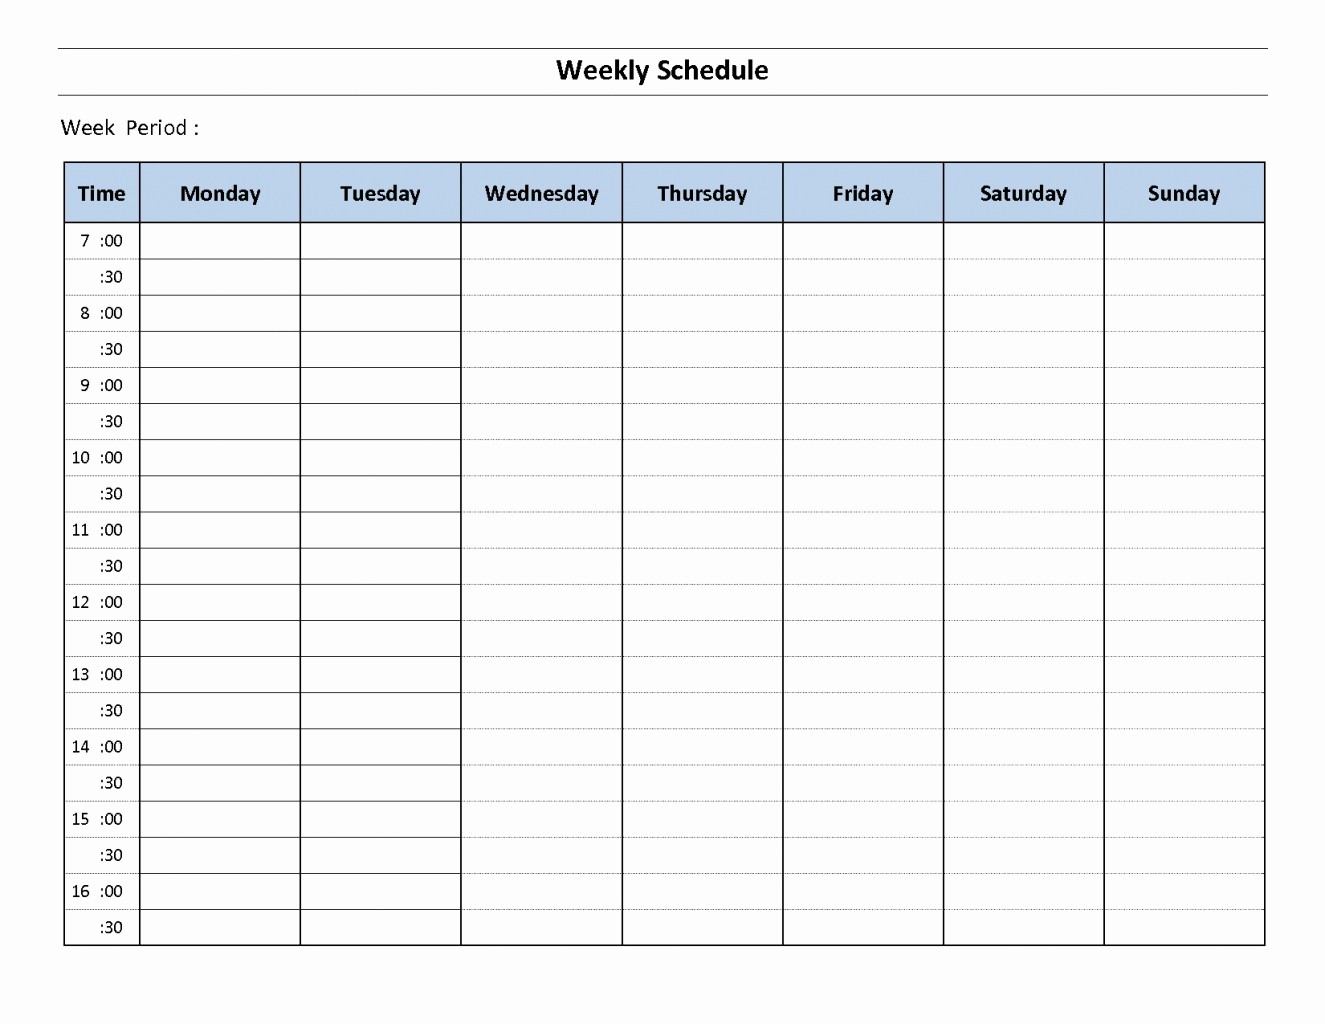 Weekly Schedule by Hour Template Luxury Weekly Calendar with Hours Template